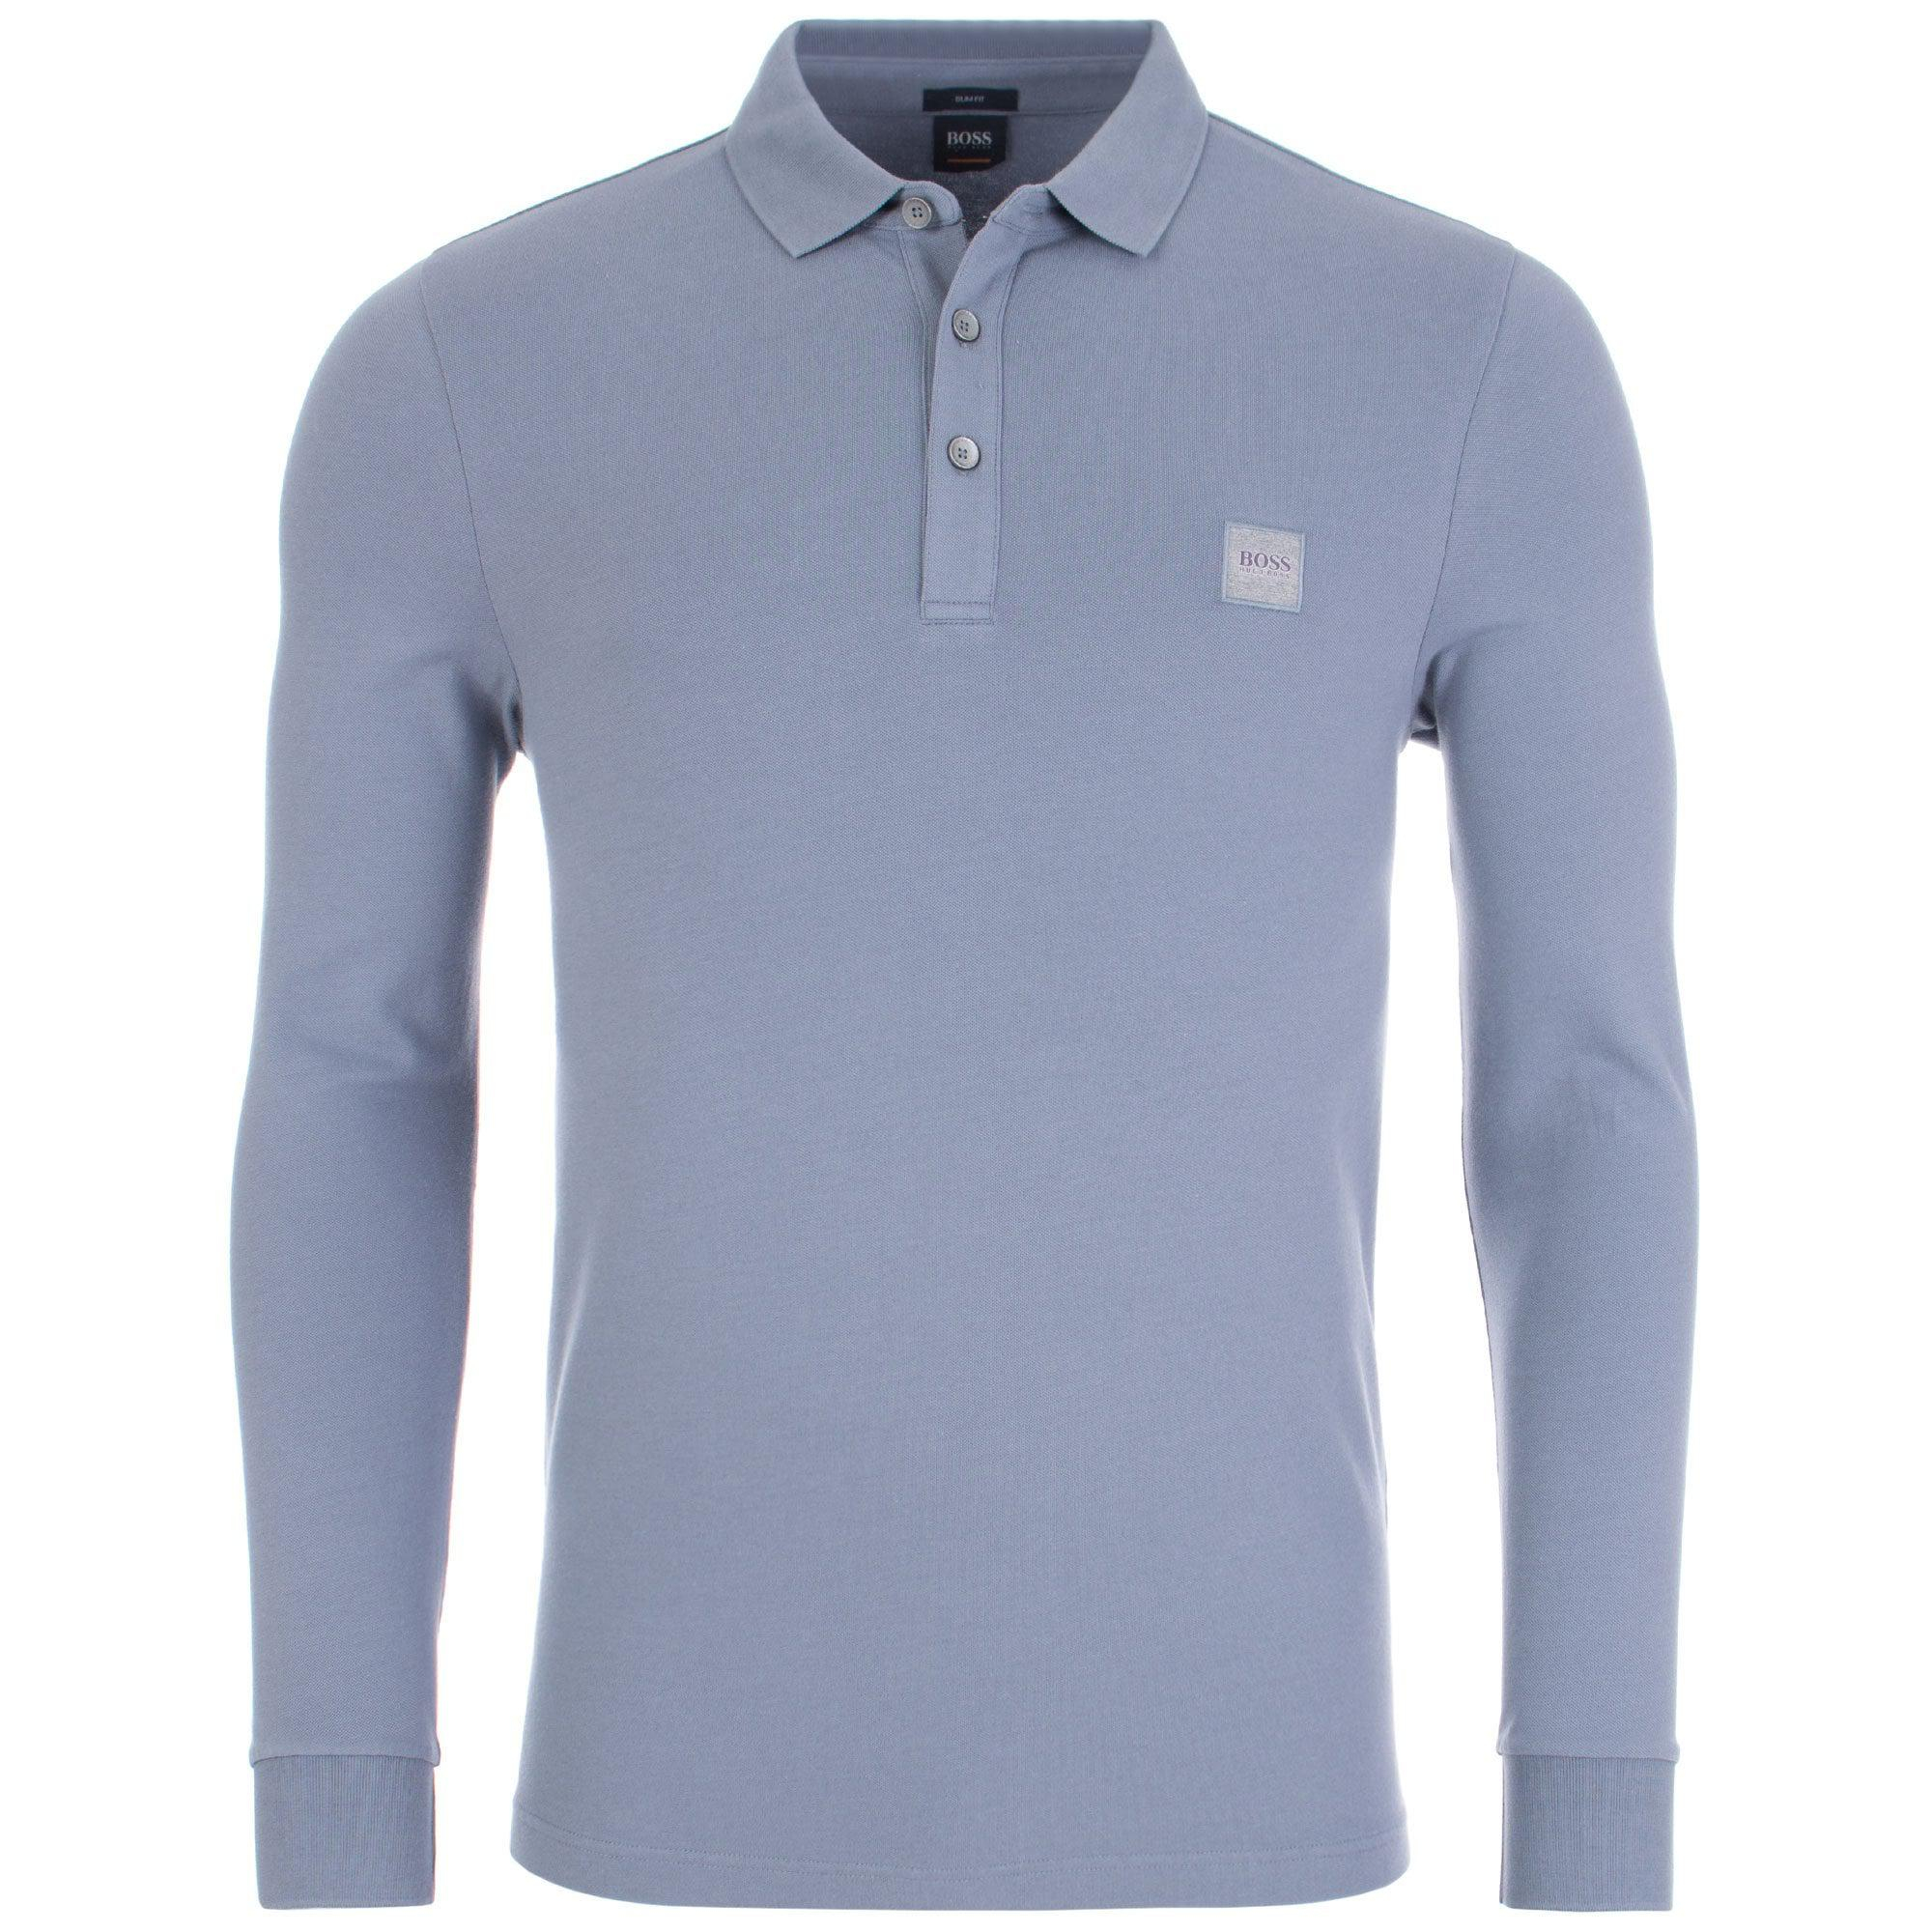 a2996a02 BOSS by Hugo Boss Casual Passerby Slim Fit Long Sleeved Polo Shirt ...